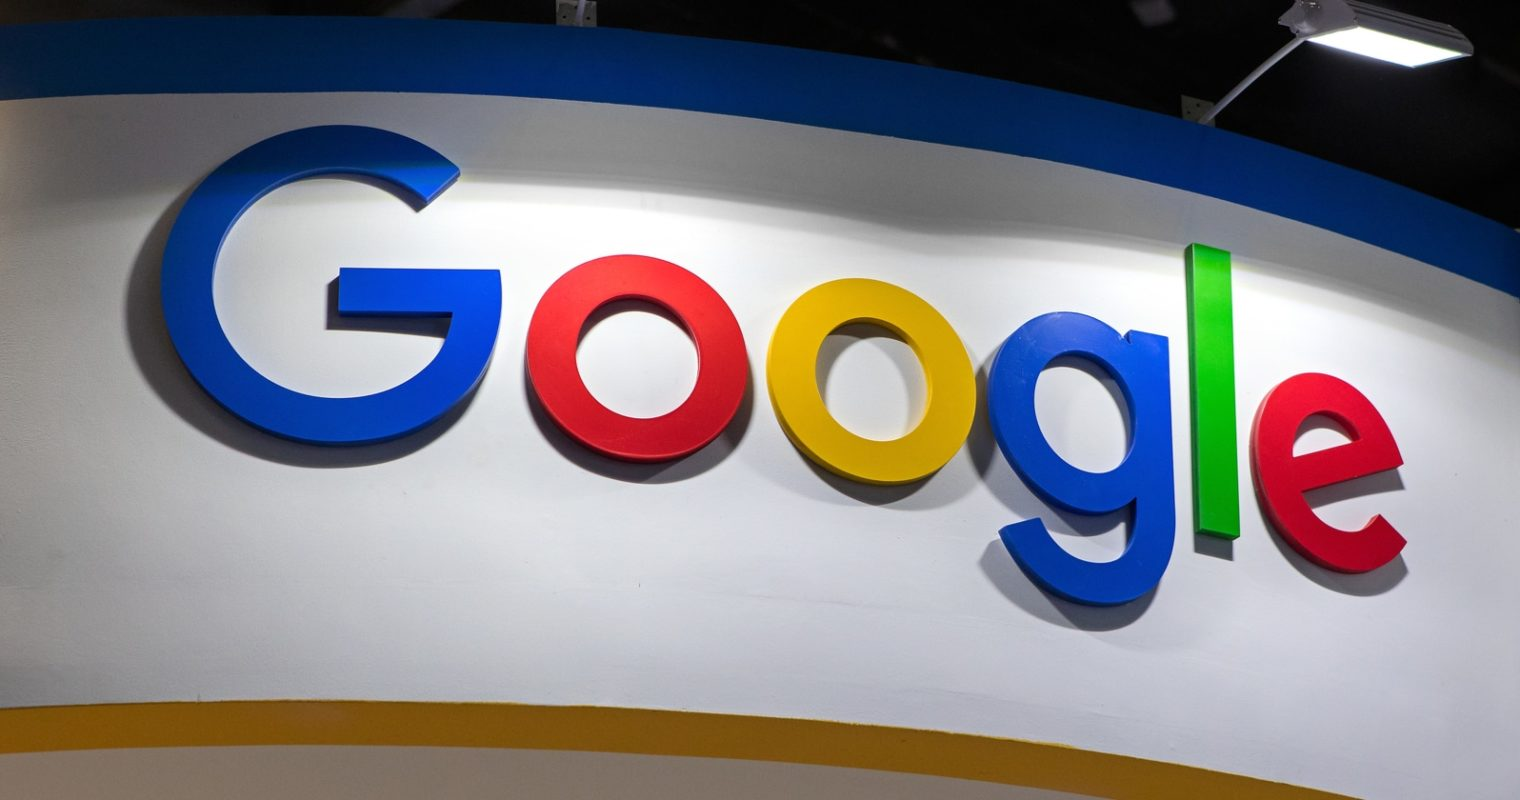 Google is Compressing Its Display Ads So Pages Load Faster